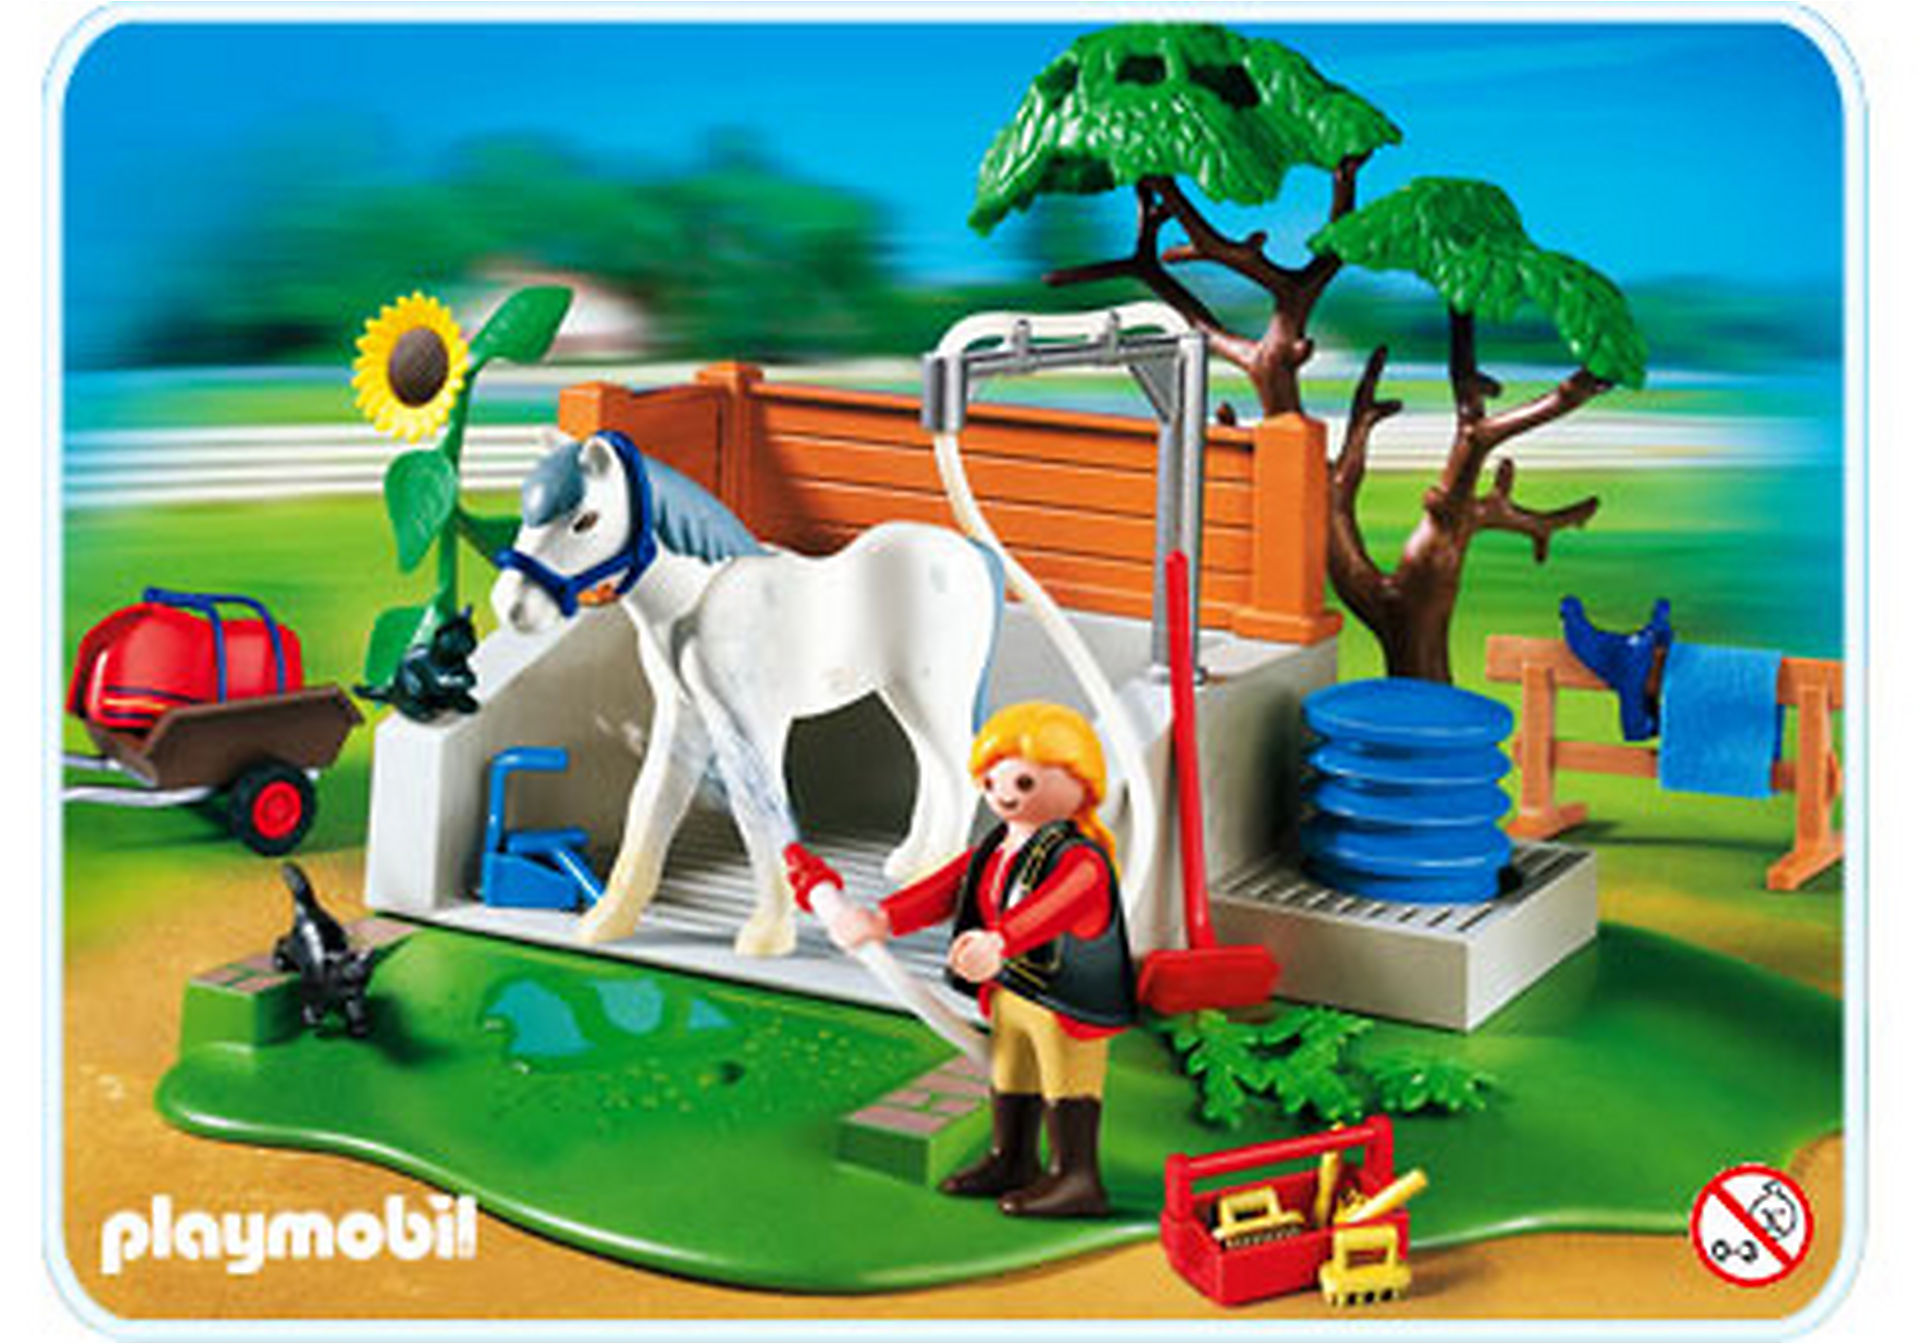 http://media.playmobil.com/i/playmobil/4193-A_product_detail/Box de lavage pour chevaux